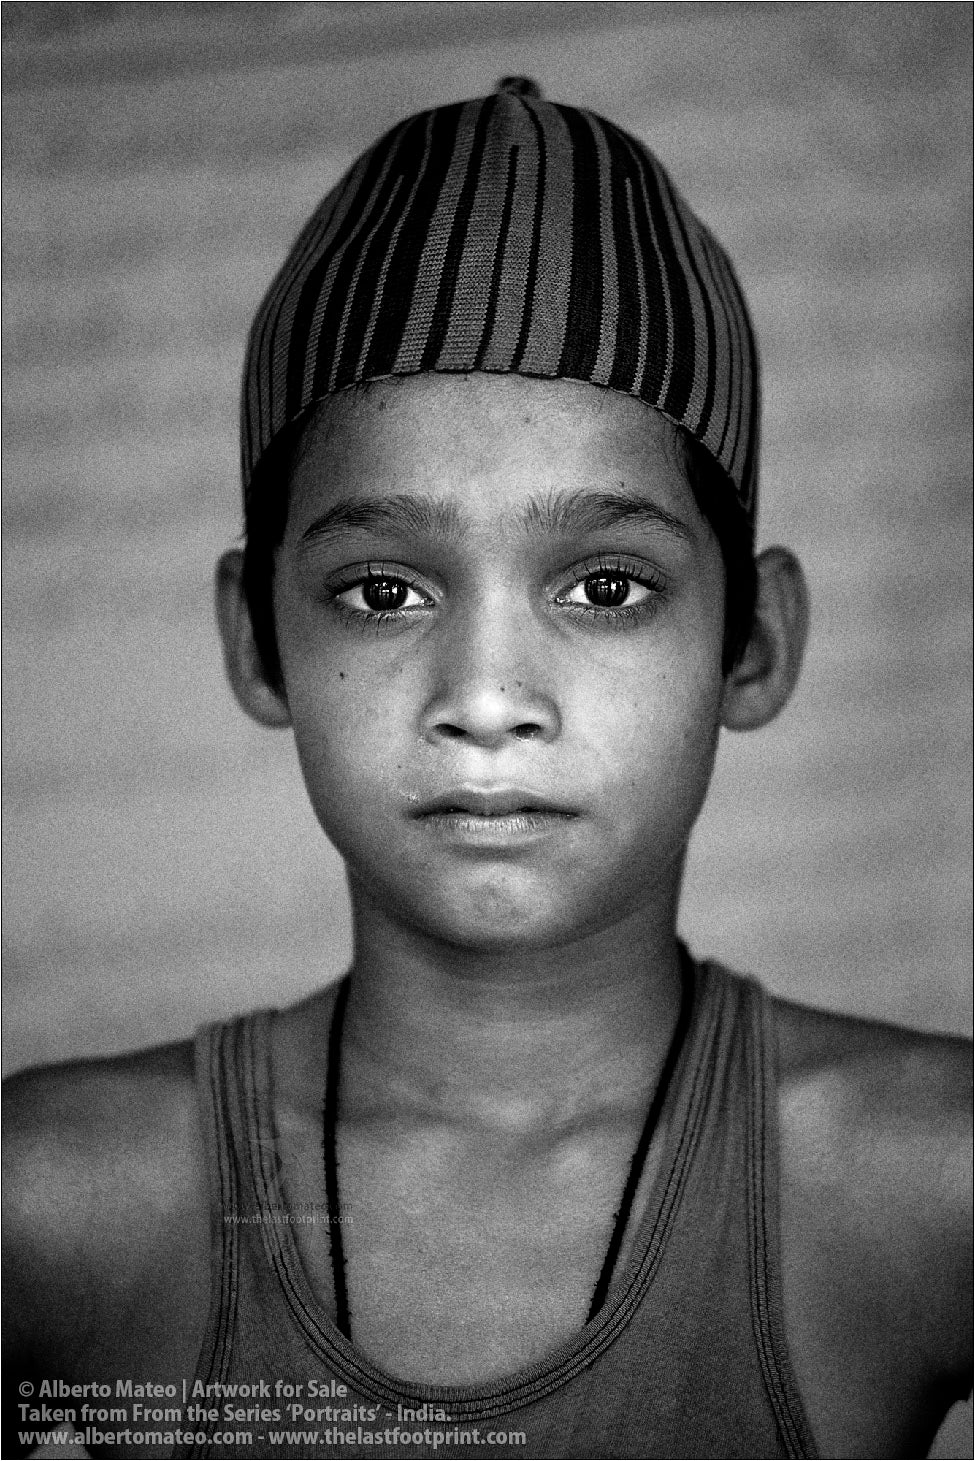 Portrait of Muslim Child, Ballia, Uttar Pradesh, India.